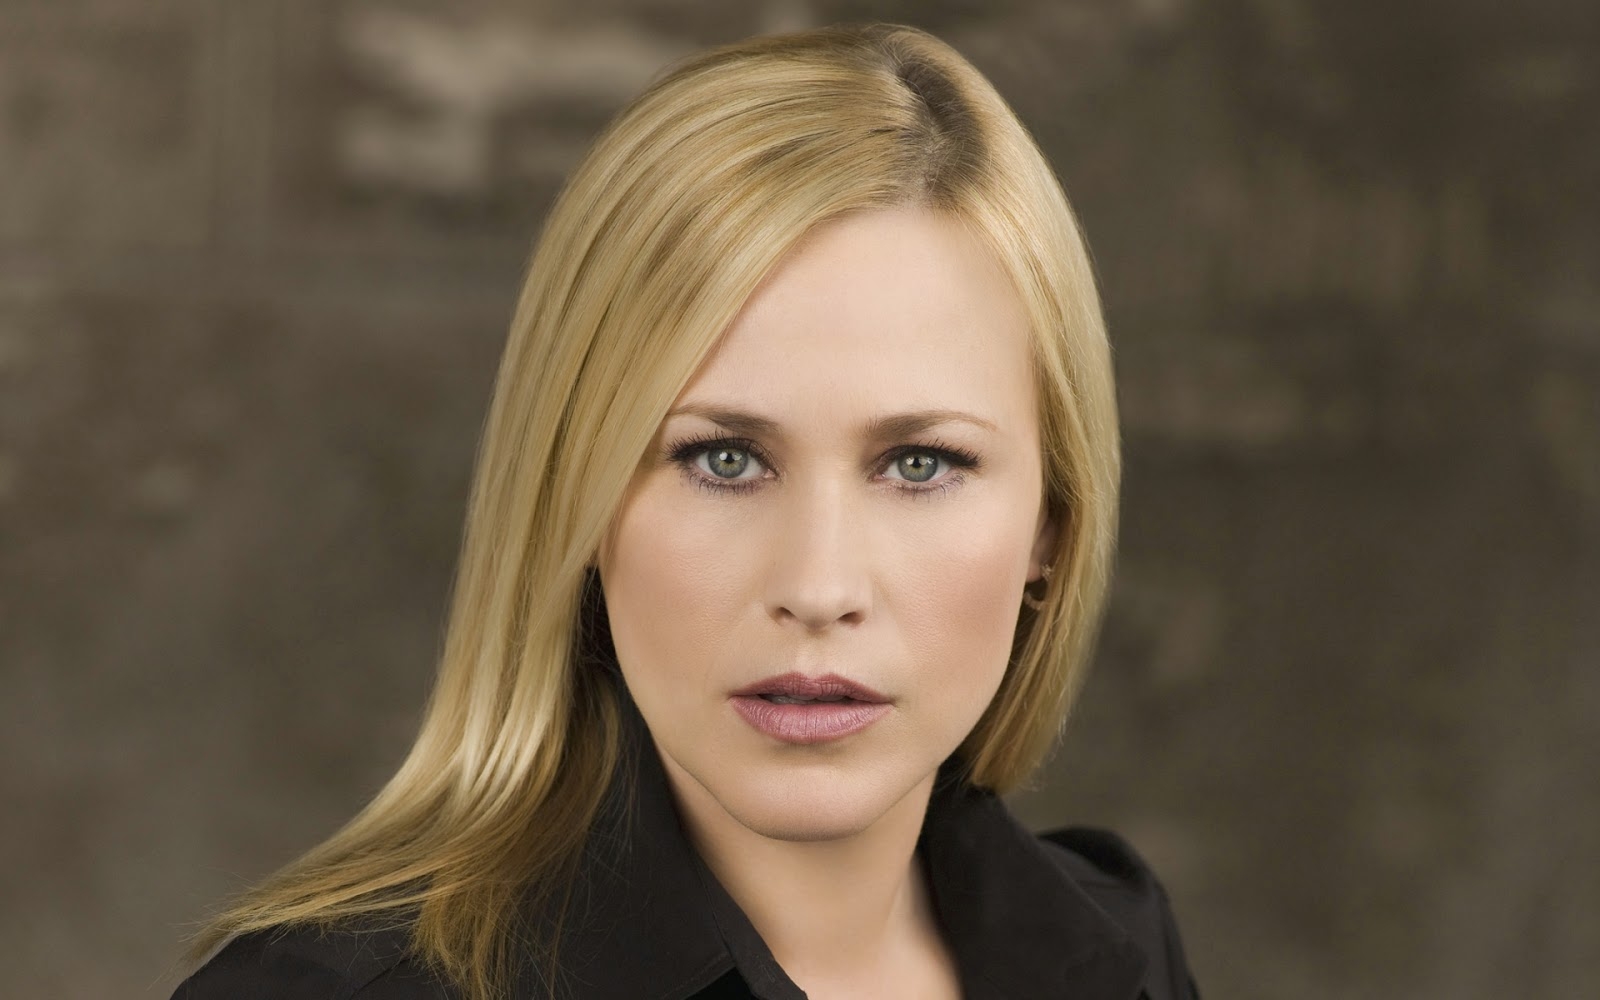 Celebrity Hd Wallpapers Celebrity Patricia Arquette Hd Photos